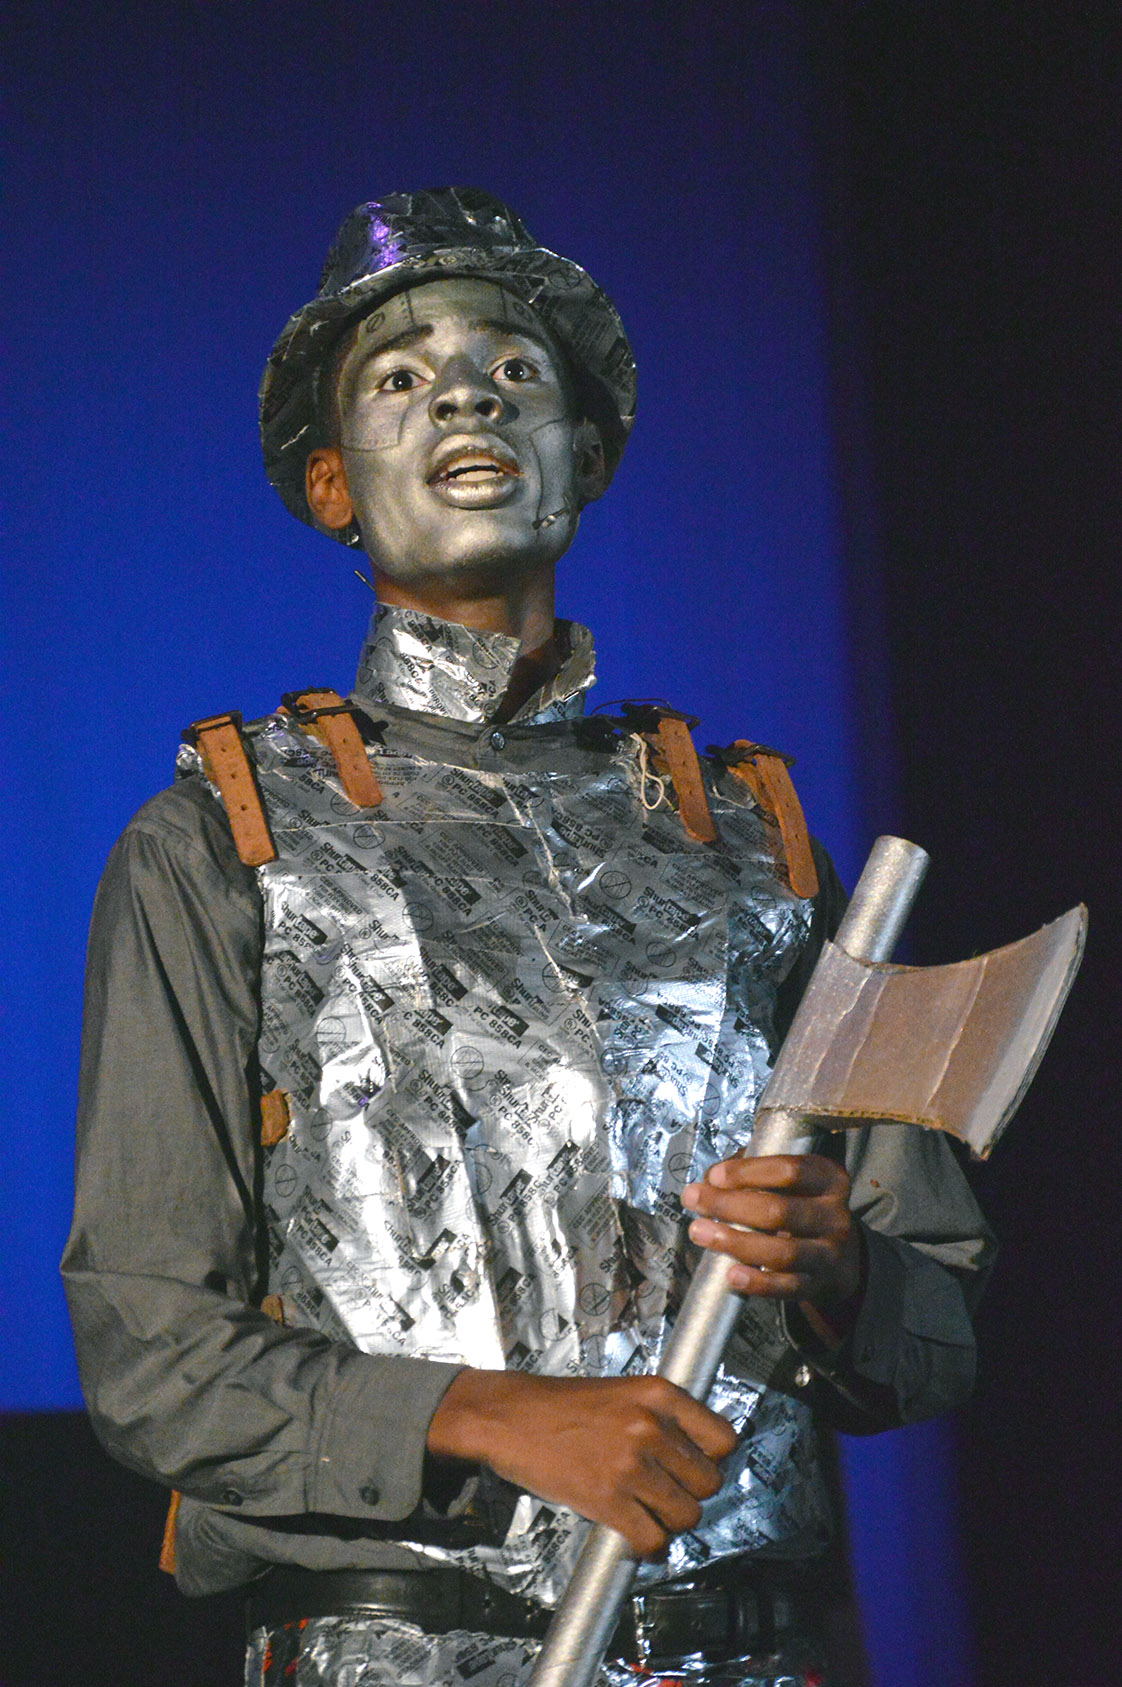 Joshua Suiter, the Tinman, sings out in happiness at the new heart he just received from the magical and mysterious Wiz, played by Justin Wright/Mario Criss (waiting on confirmation which one). (Staff photo by Meredith Wilson)